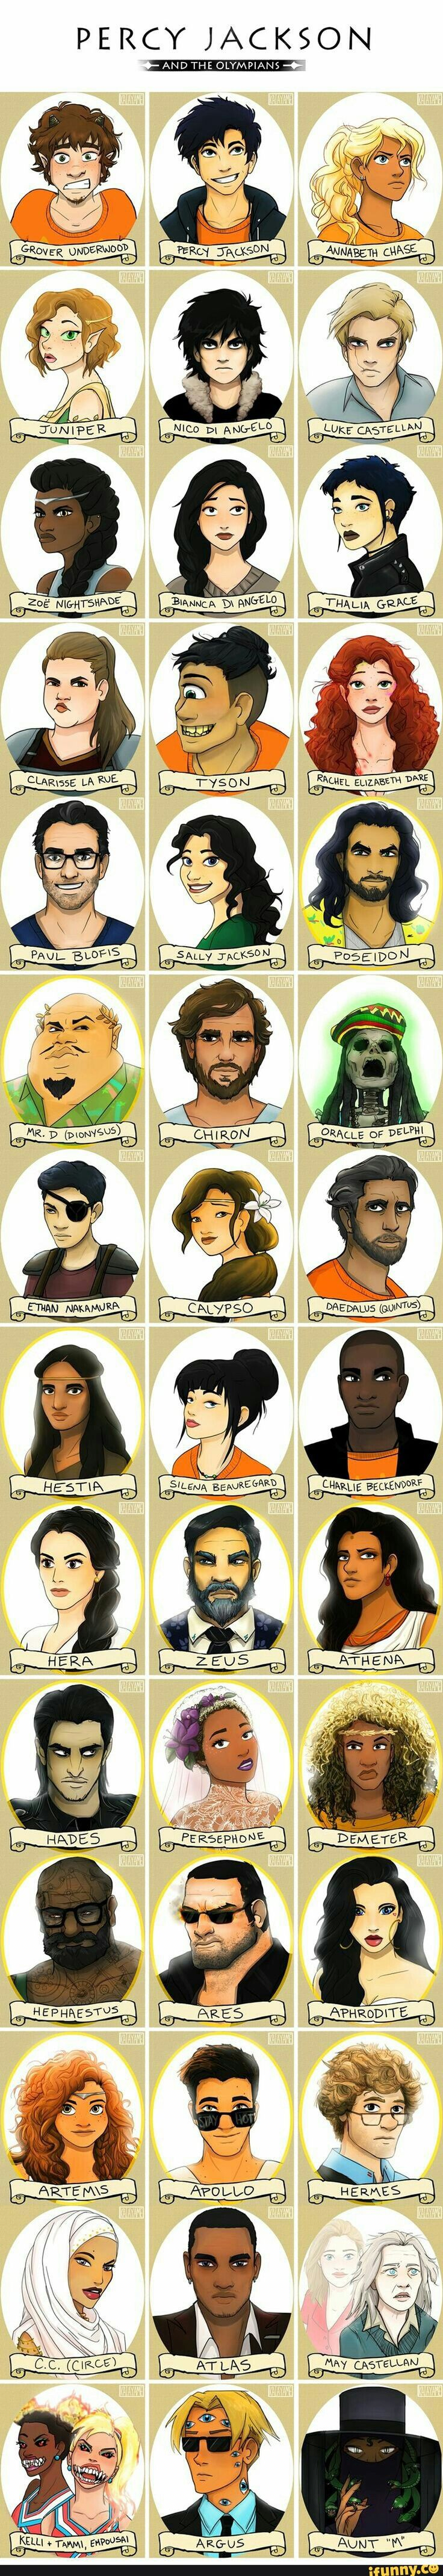 Agree with most of these characters looks but some not so much